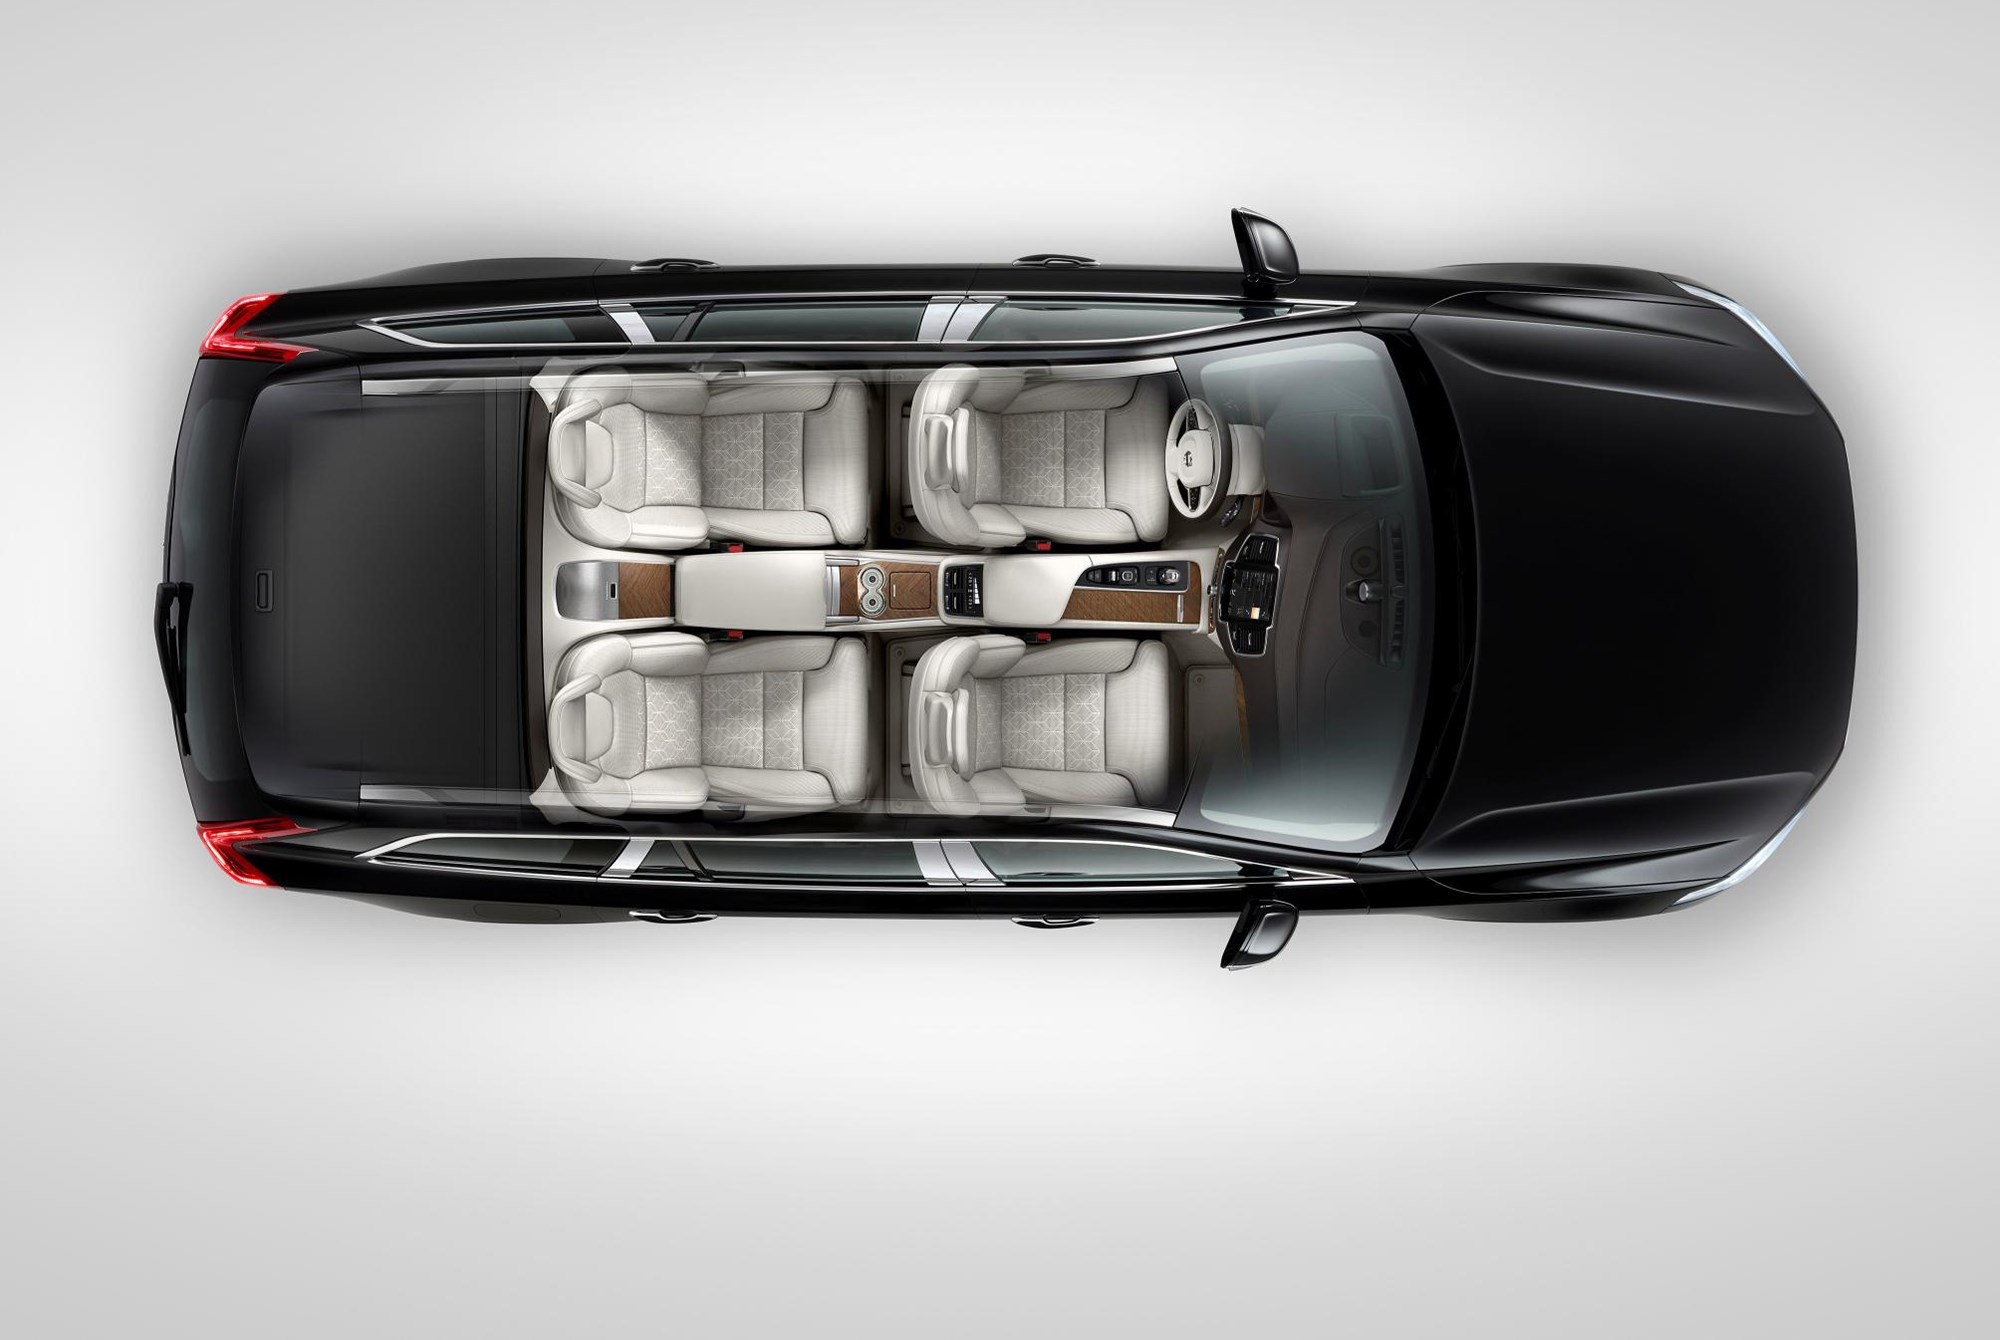 Volvo Excellence Four Seater Suv Unveiled At Shanghai